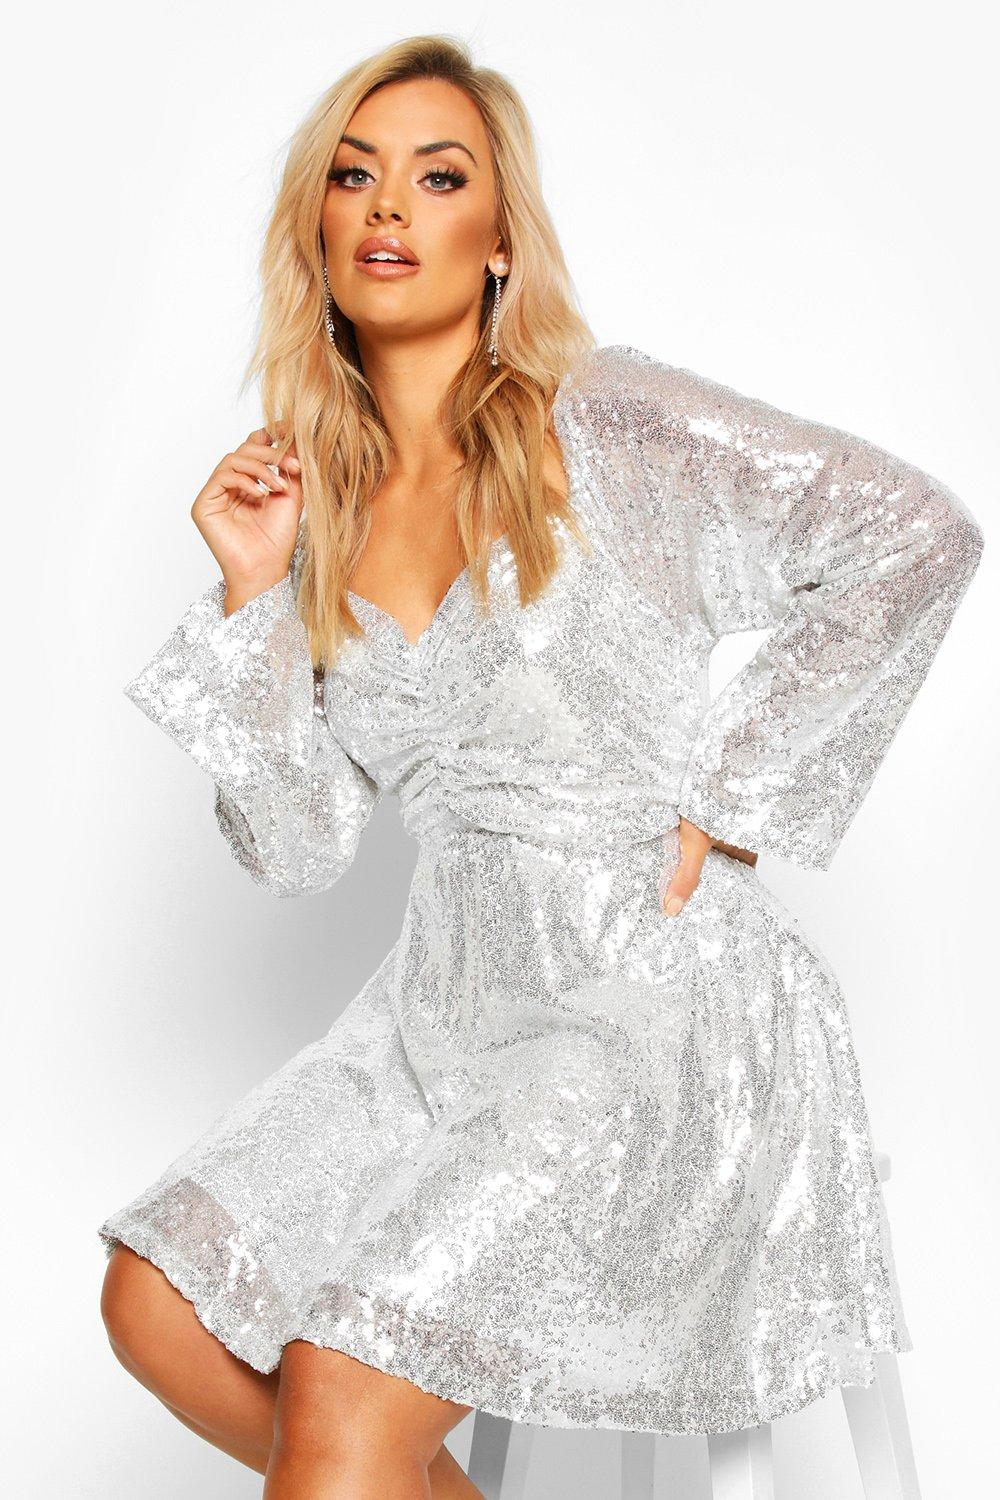 60s 70s Plus Size Dresses, Clothing, Costumes Womens Plus Sequin Puff Sleeve Ruched Detail Skater Dress - Grey - 16 $40.00 AT vintagedancer.com